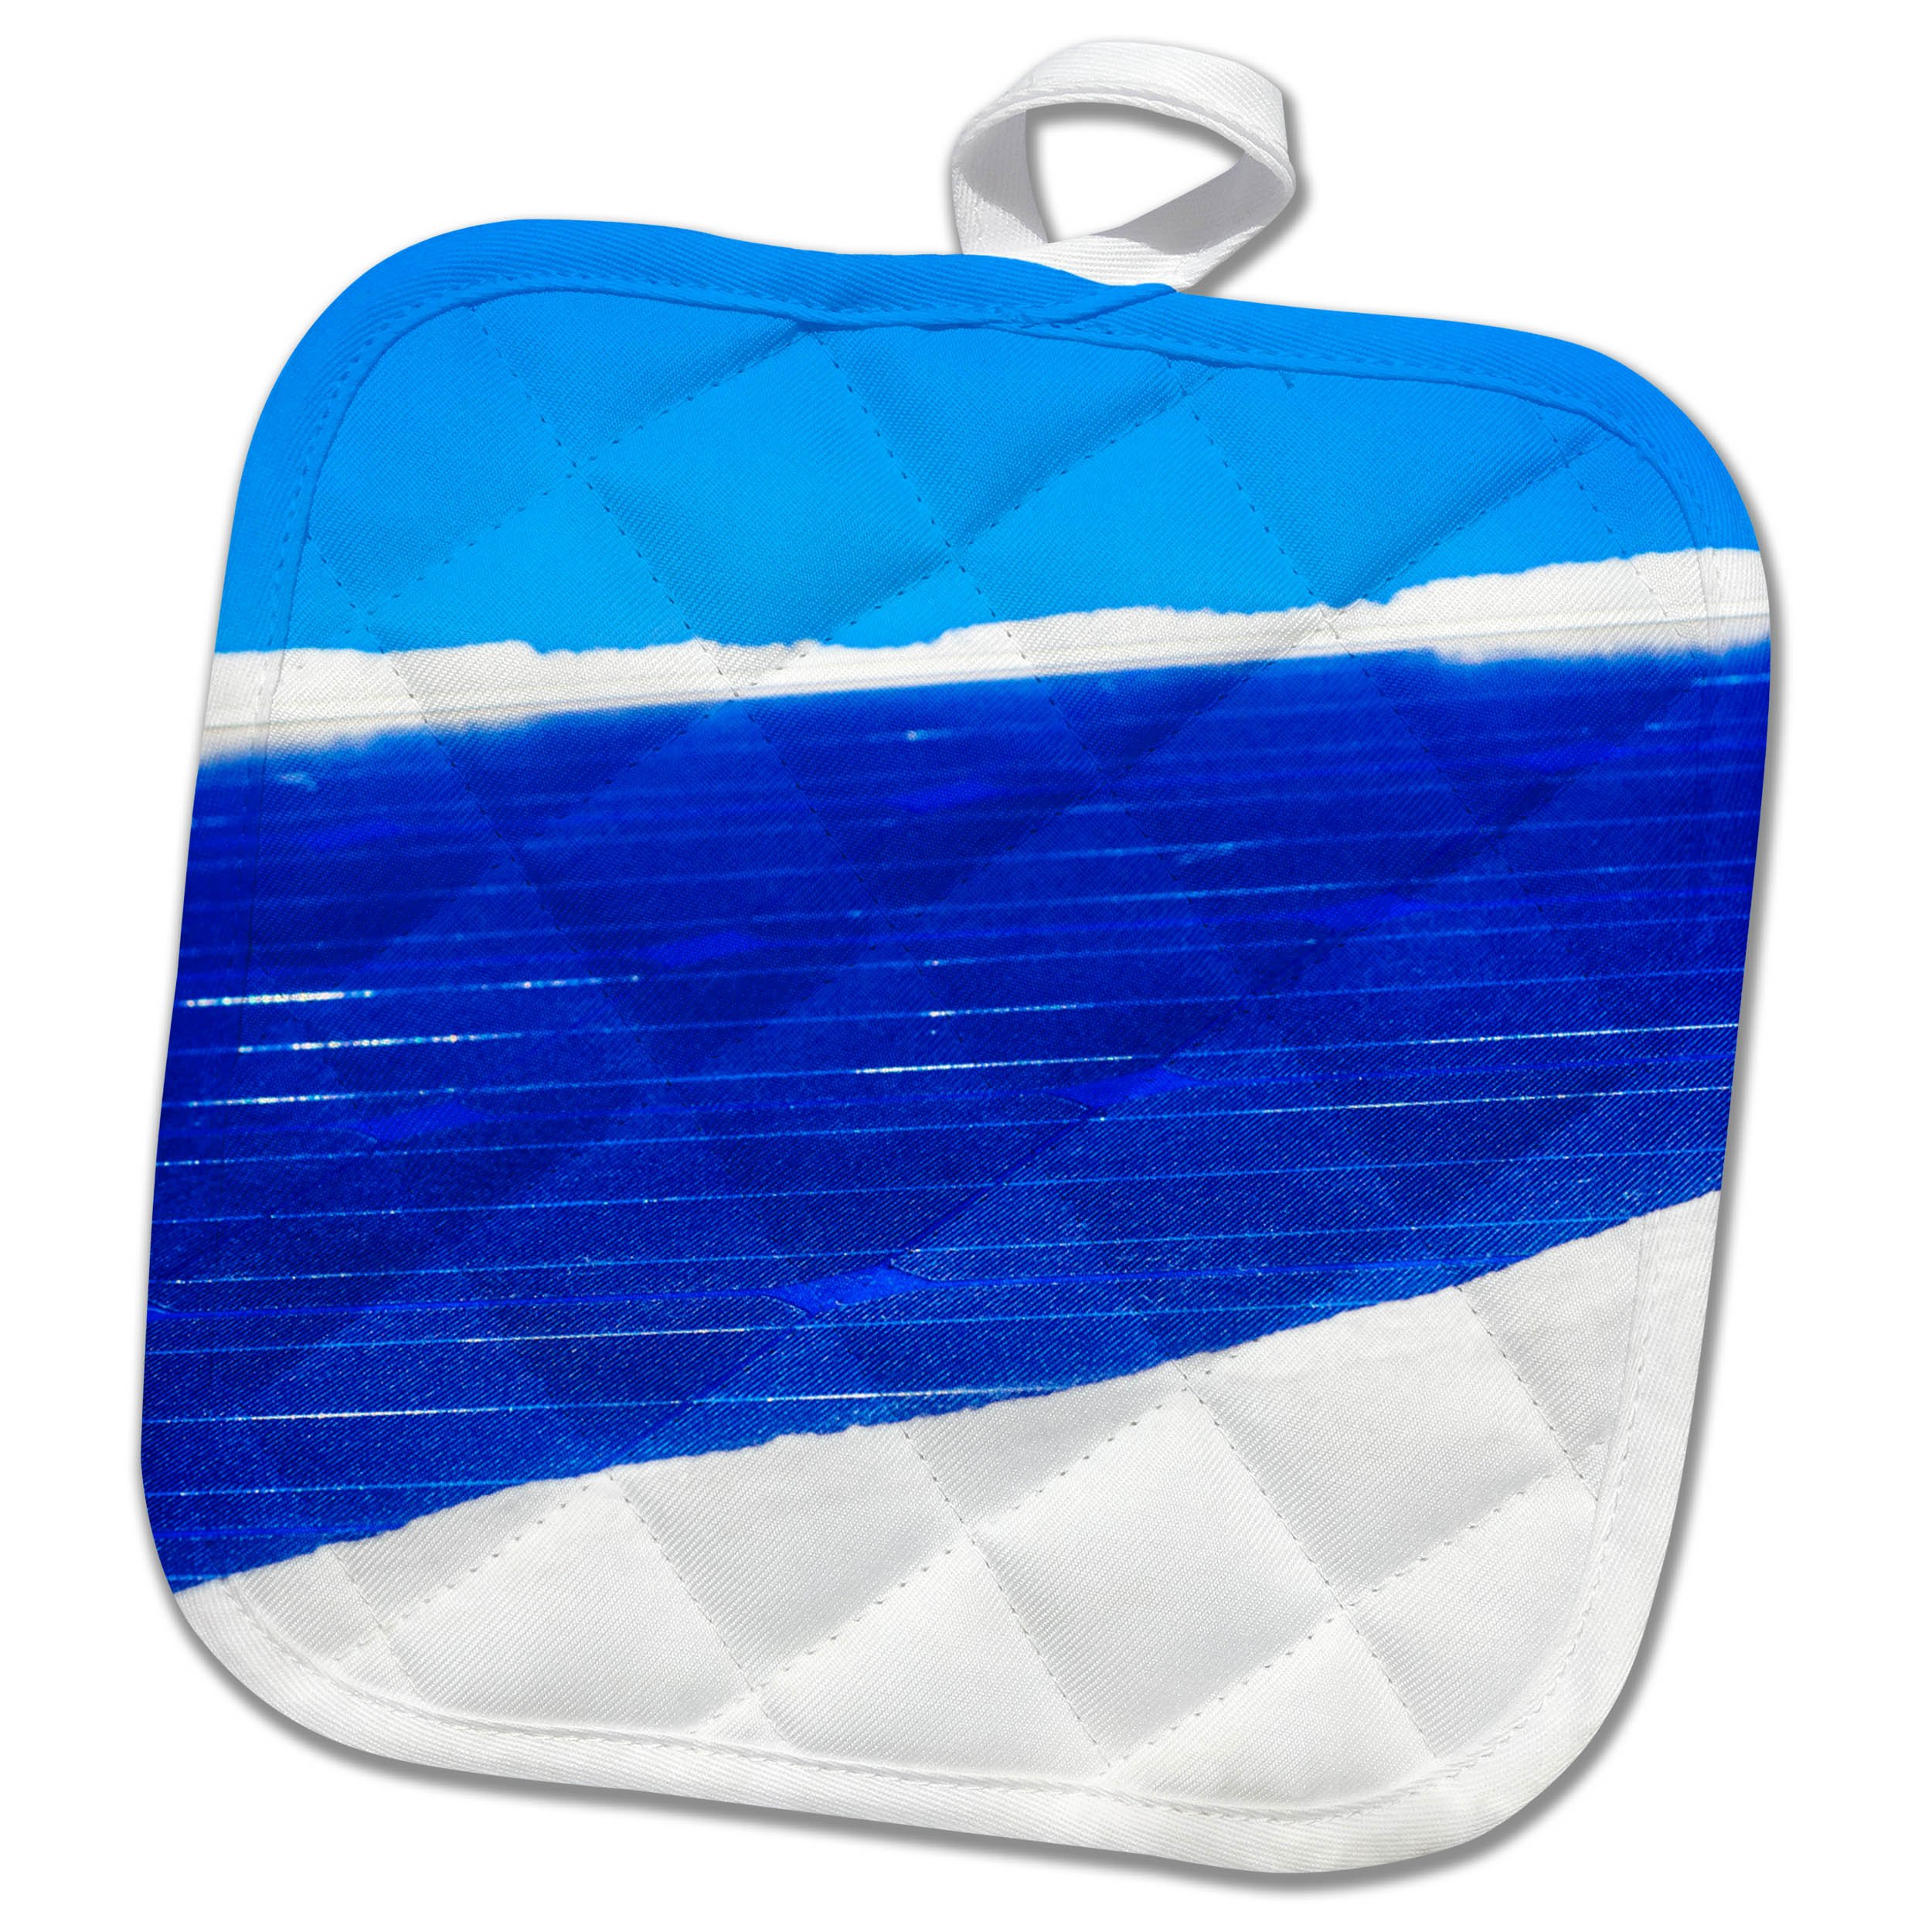 3dRose Alexis Photography - Seasons Winter - Snow covered solar power panel, blue sky - 8x8 Potholder (phl_265636_1)